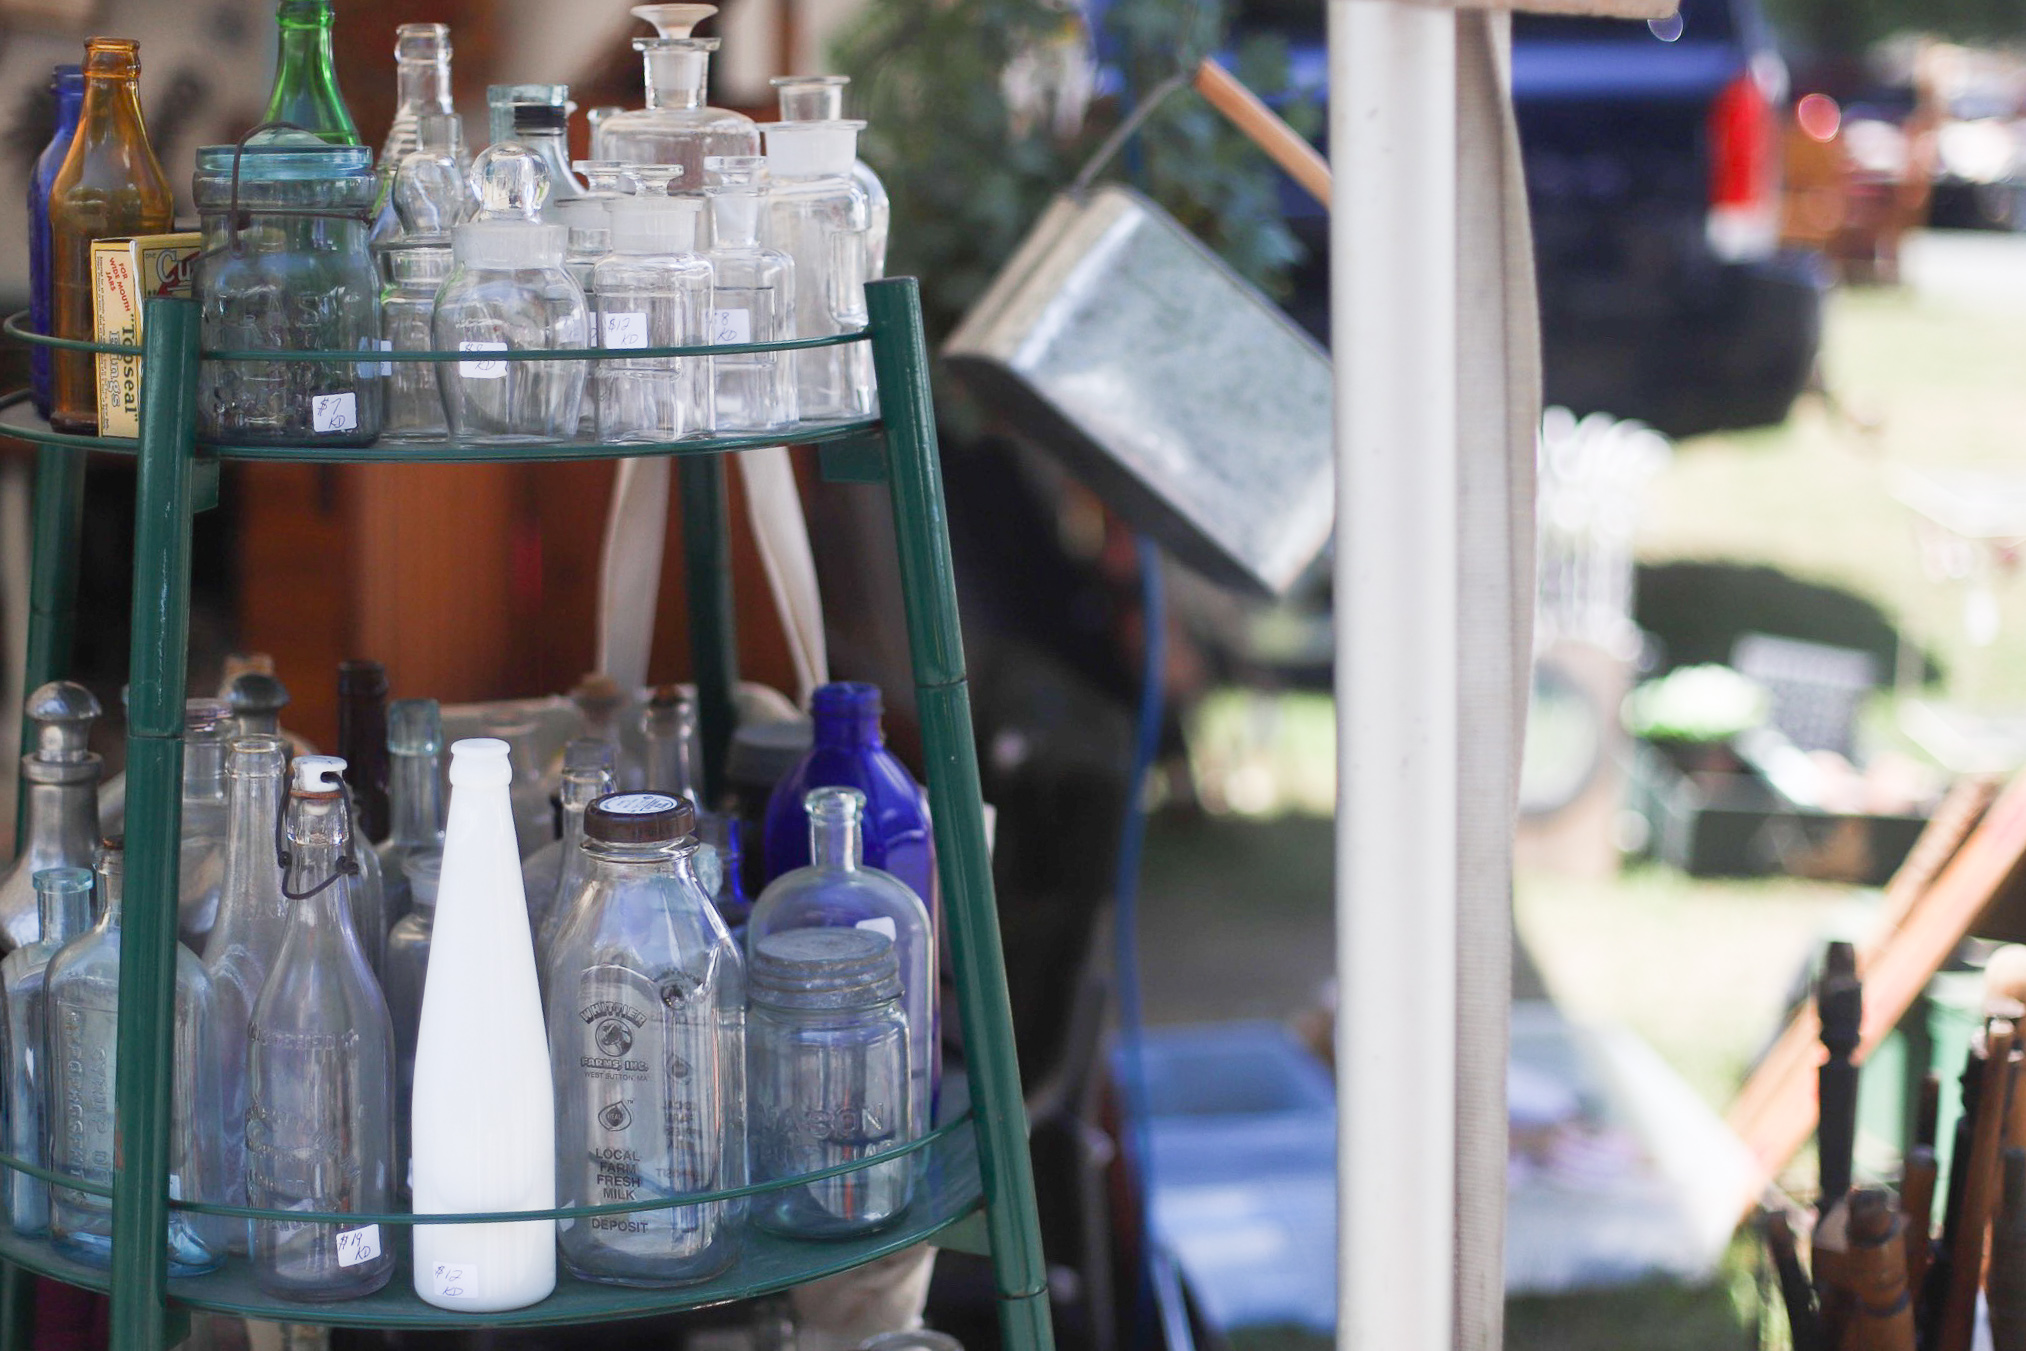 A guide to the Brimfield Antique Show and Flea Market- the largest of its kind in the country - and how to score the best vintage and thrift finds there! | glitterinc.com | @glitterinc